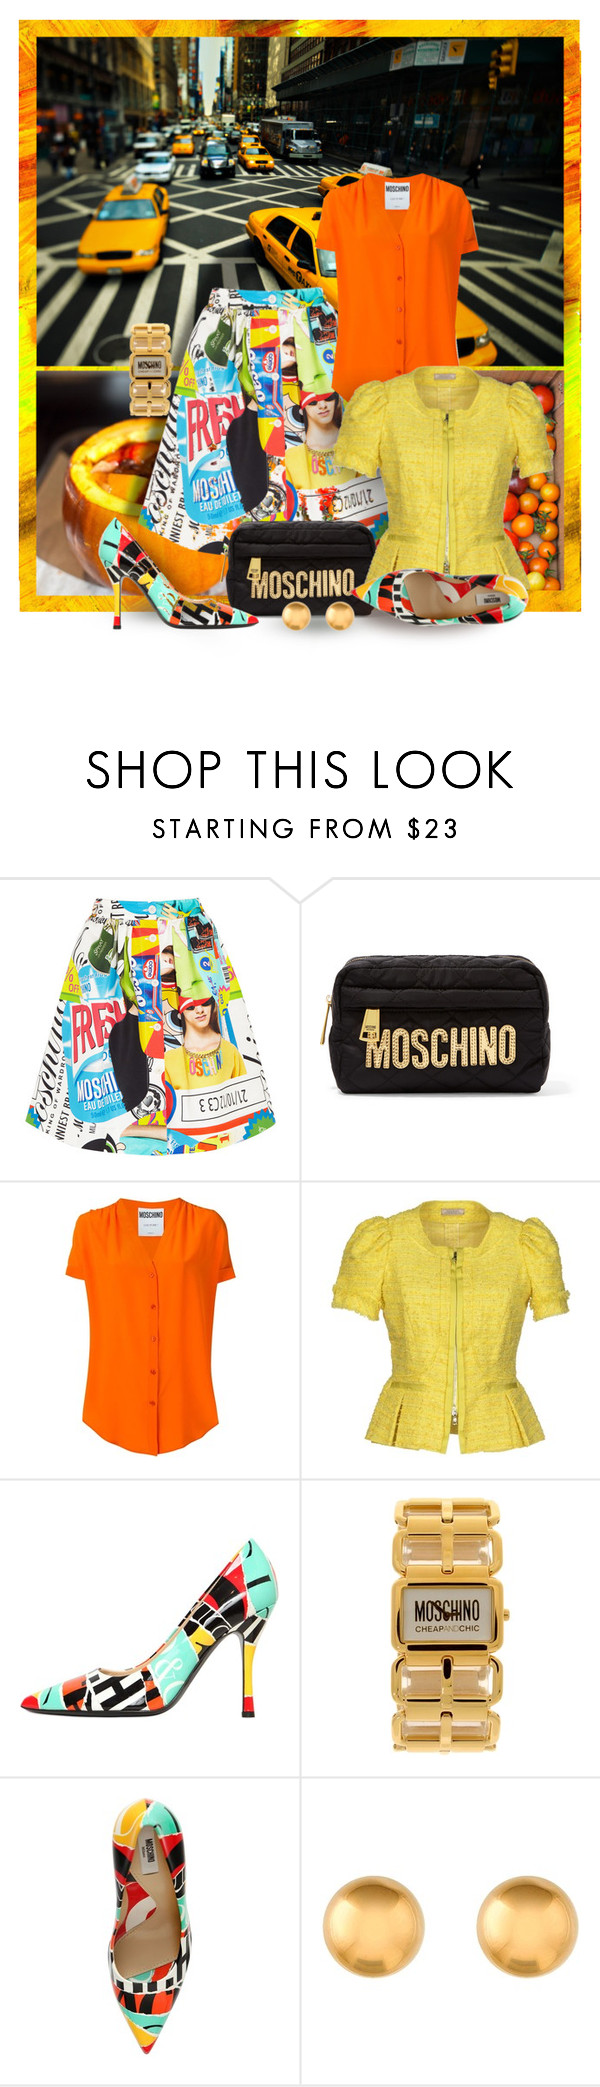 """""""Tricky Trend """"Orange & Yellow"""" - or - Blame it on Moschino !"""" by mary-gereis ❤ liked on Polyvore featuring TAXI, Jamie Oliver, Moschino, Nina Ricci and Moschino Cheap & Chic"""